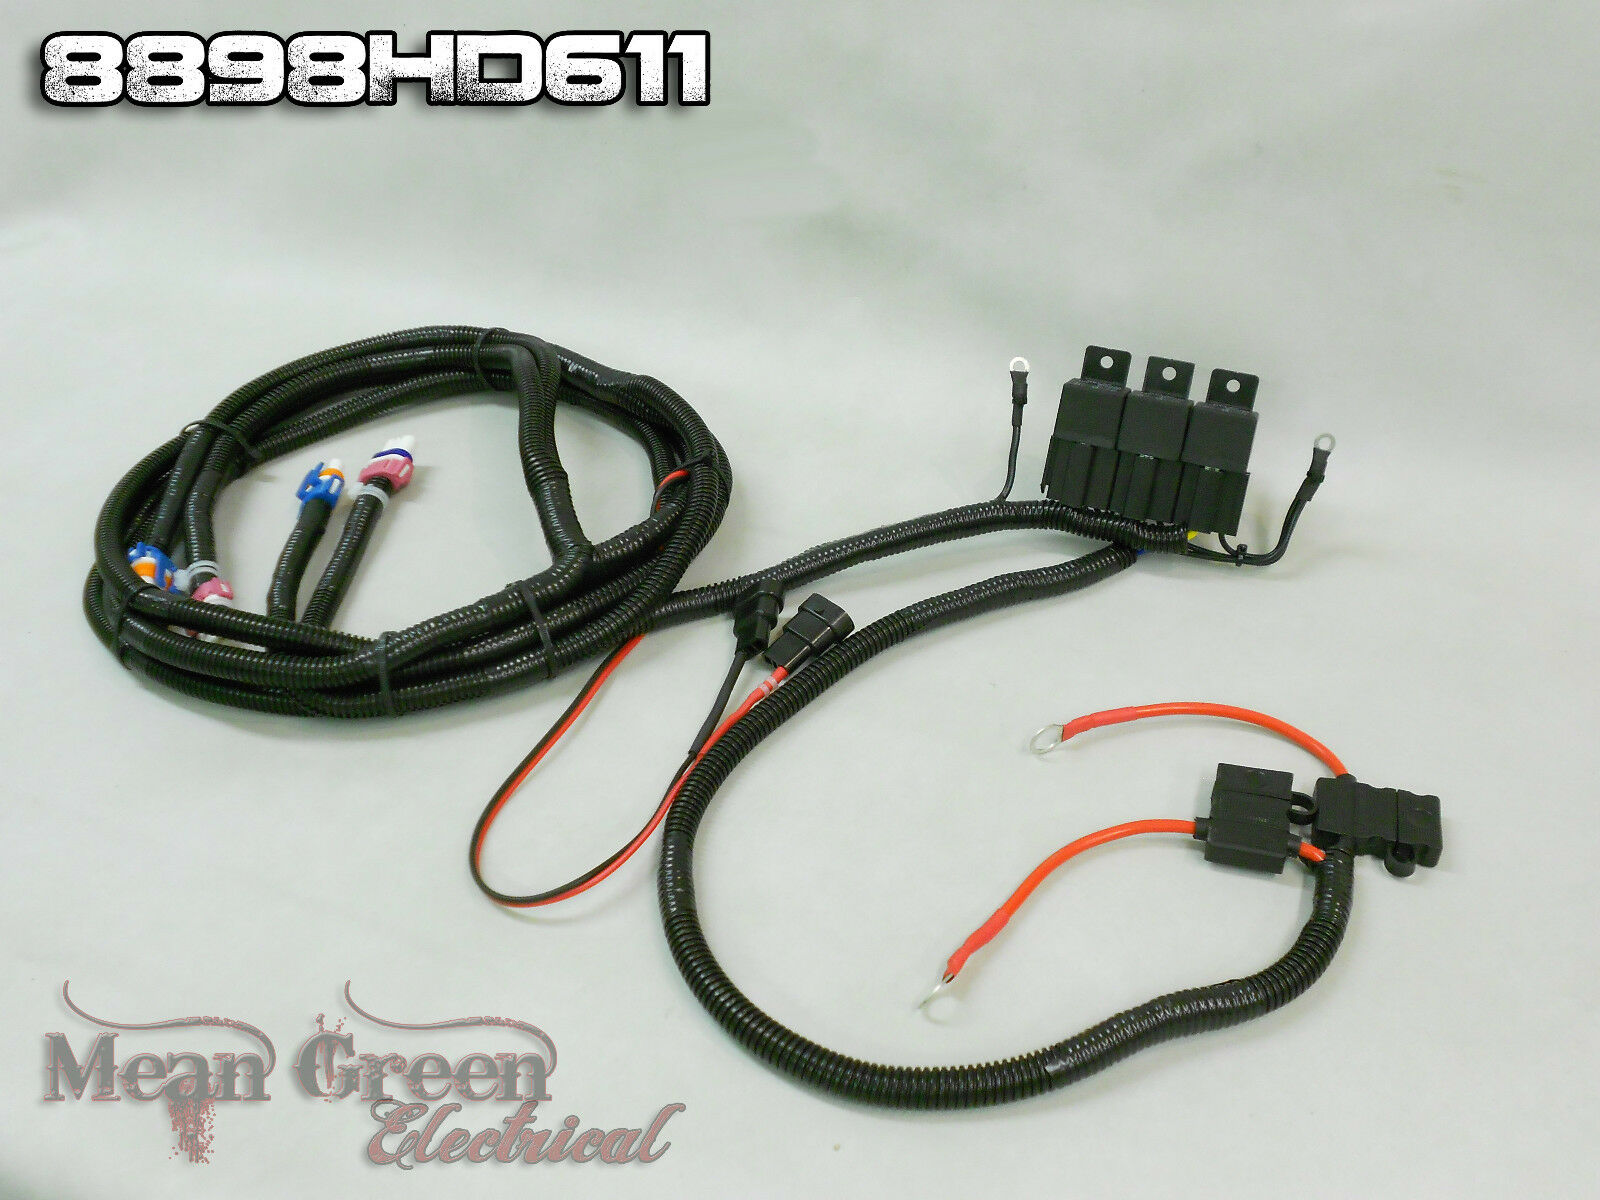 88 98 Chevy Gmc Heavy Duty Headlight Harness With 4 High Pontiac Headlamp 1 Of 3free Shipping